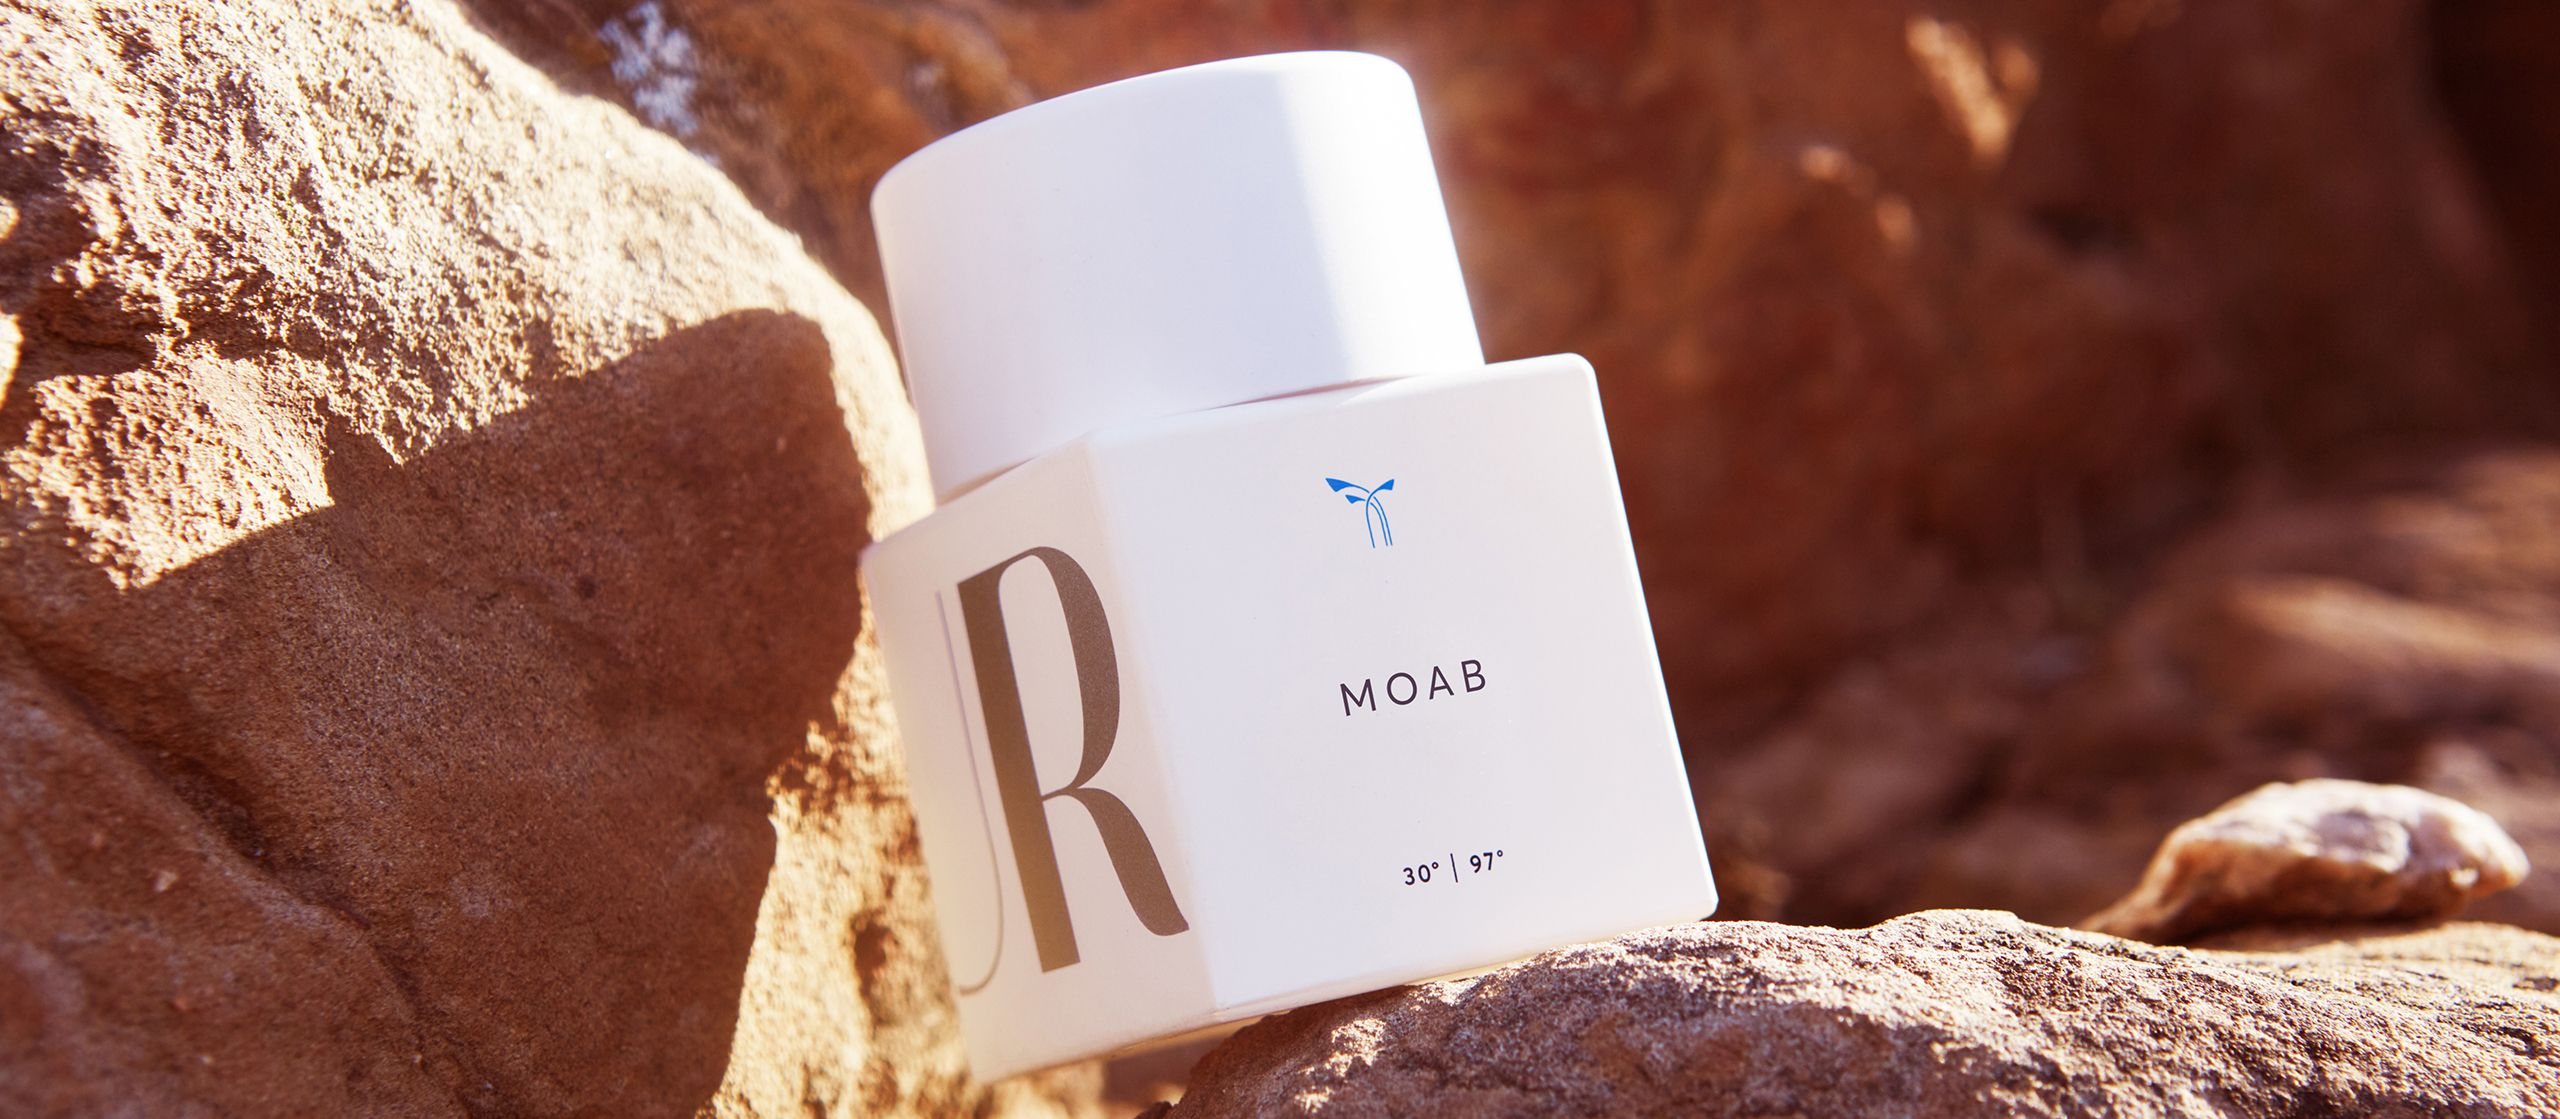 Moab - Its arid spice seduces like the vastness of the West, emanating an invigorating dry heat. #PHLUR